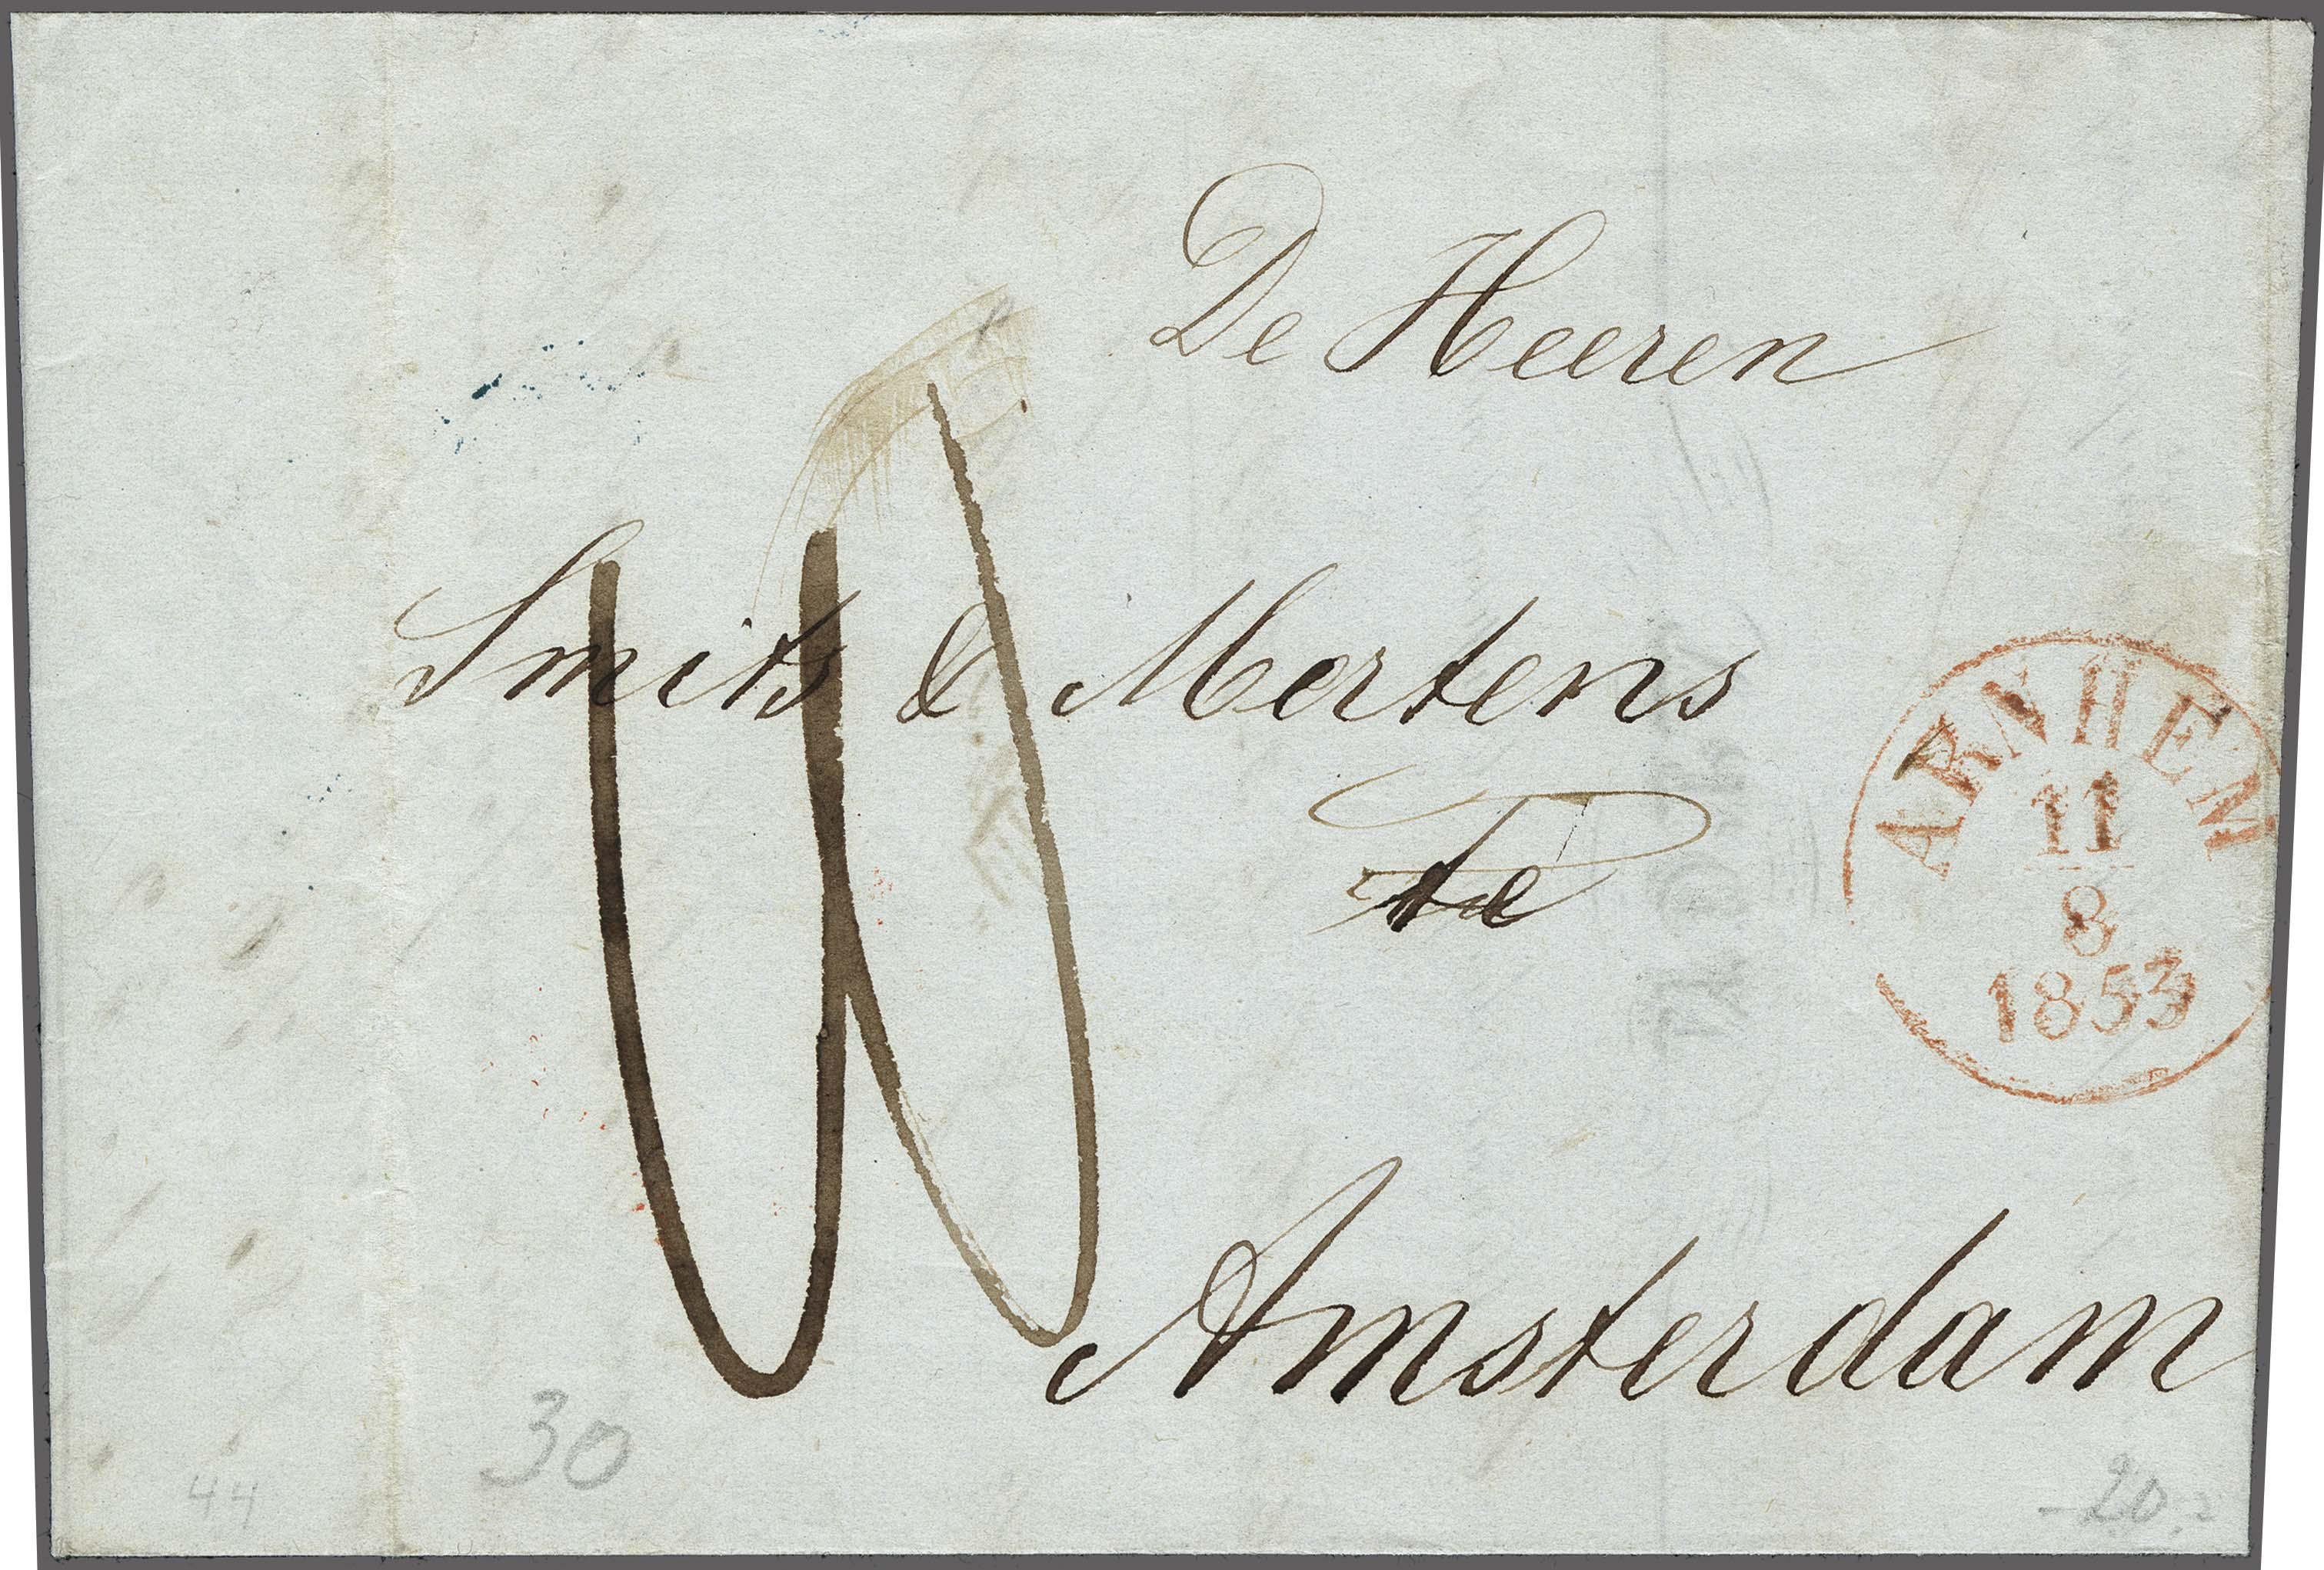 Lot 2428 - Netherlands and former colonies Netherlands -  Corinphila Veilingen Auction 250-253 - Day 3 - Netherlands and former colonies - Single lots & Picture postcards